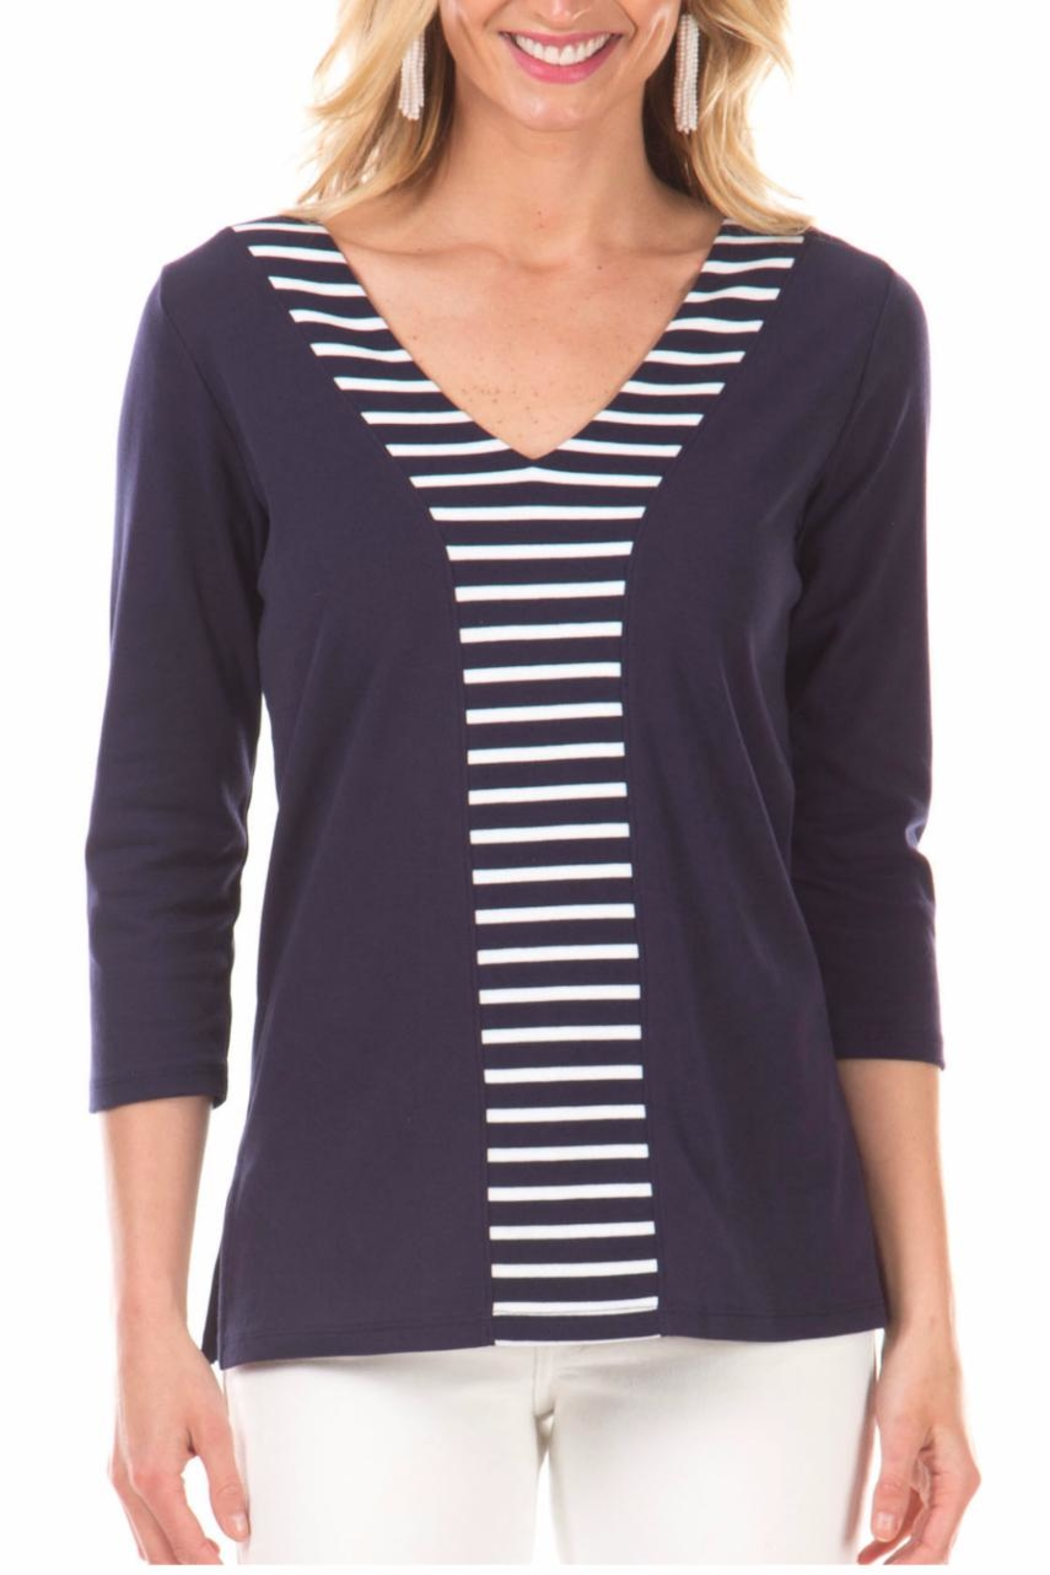 Duffield Lane Striped Accent Tunic - Main Image